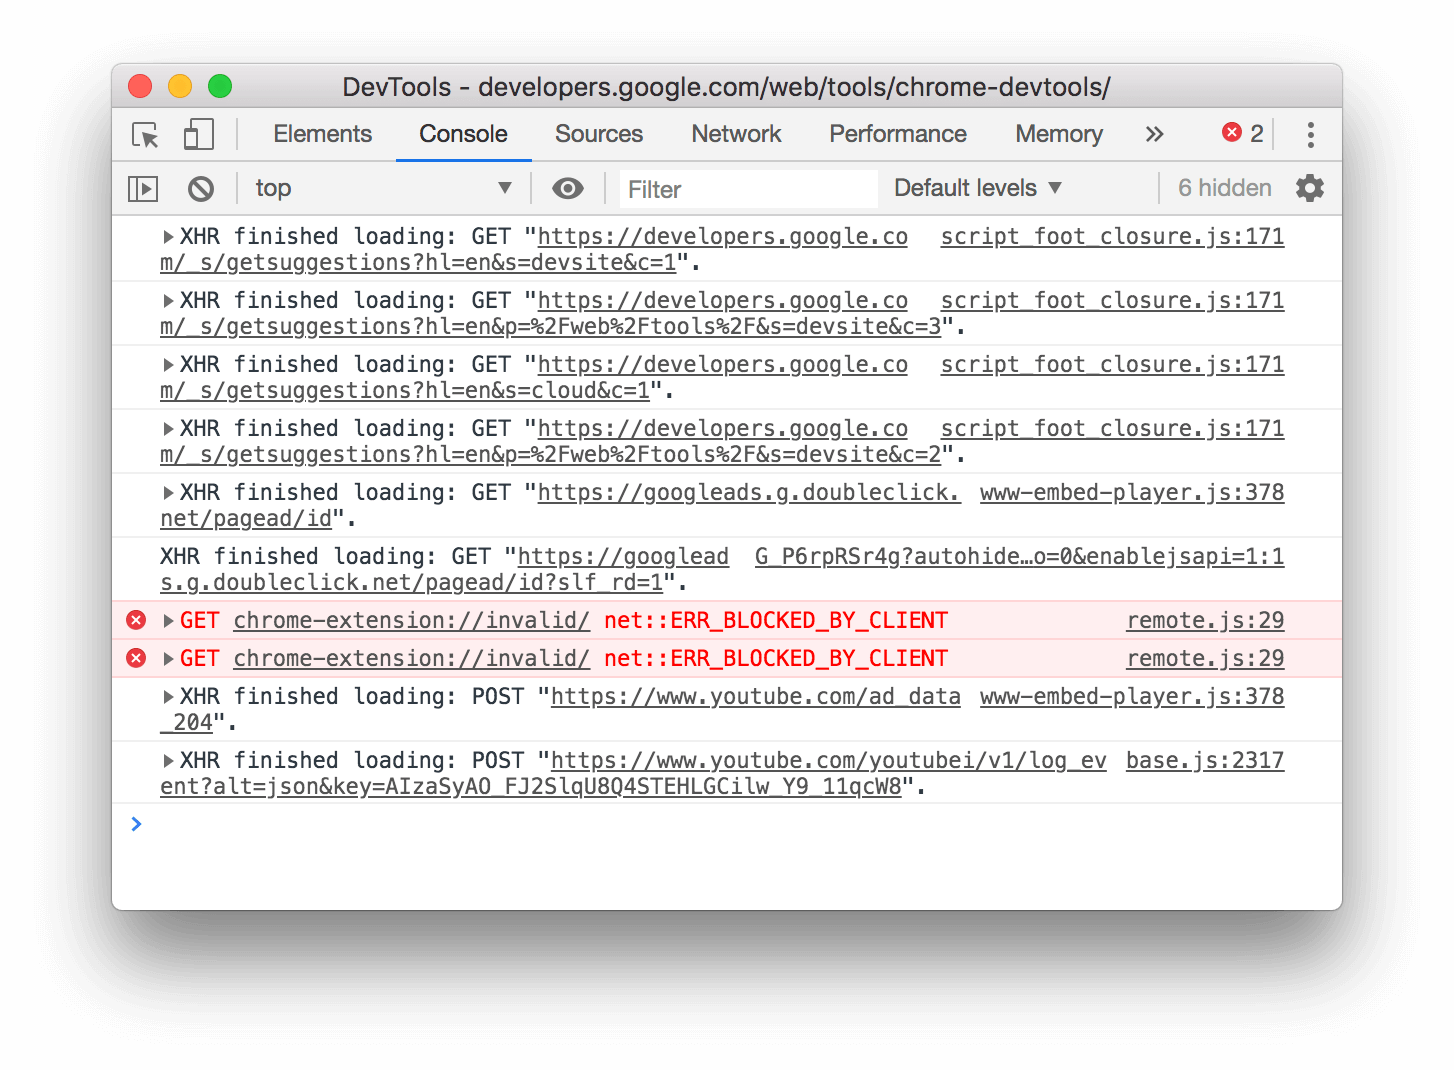 How the logged XMLHttpRequest and Fetch requests look after ungrouping.